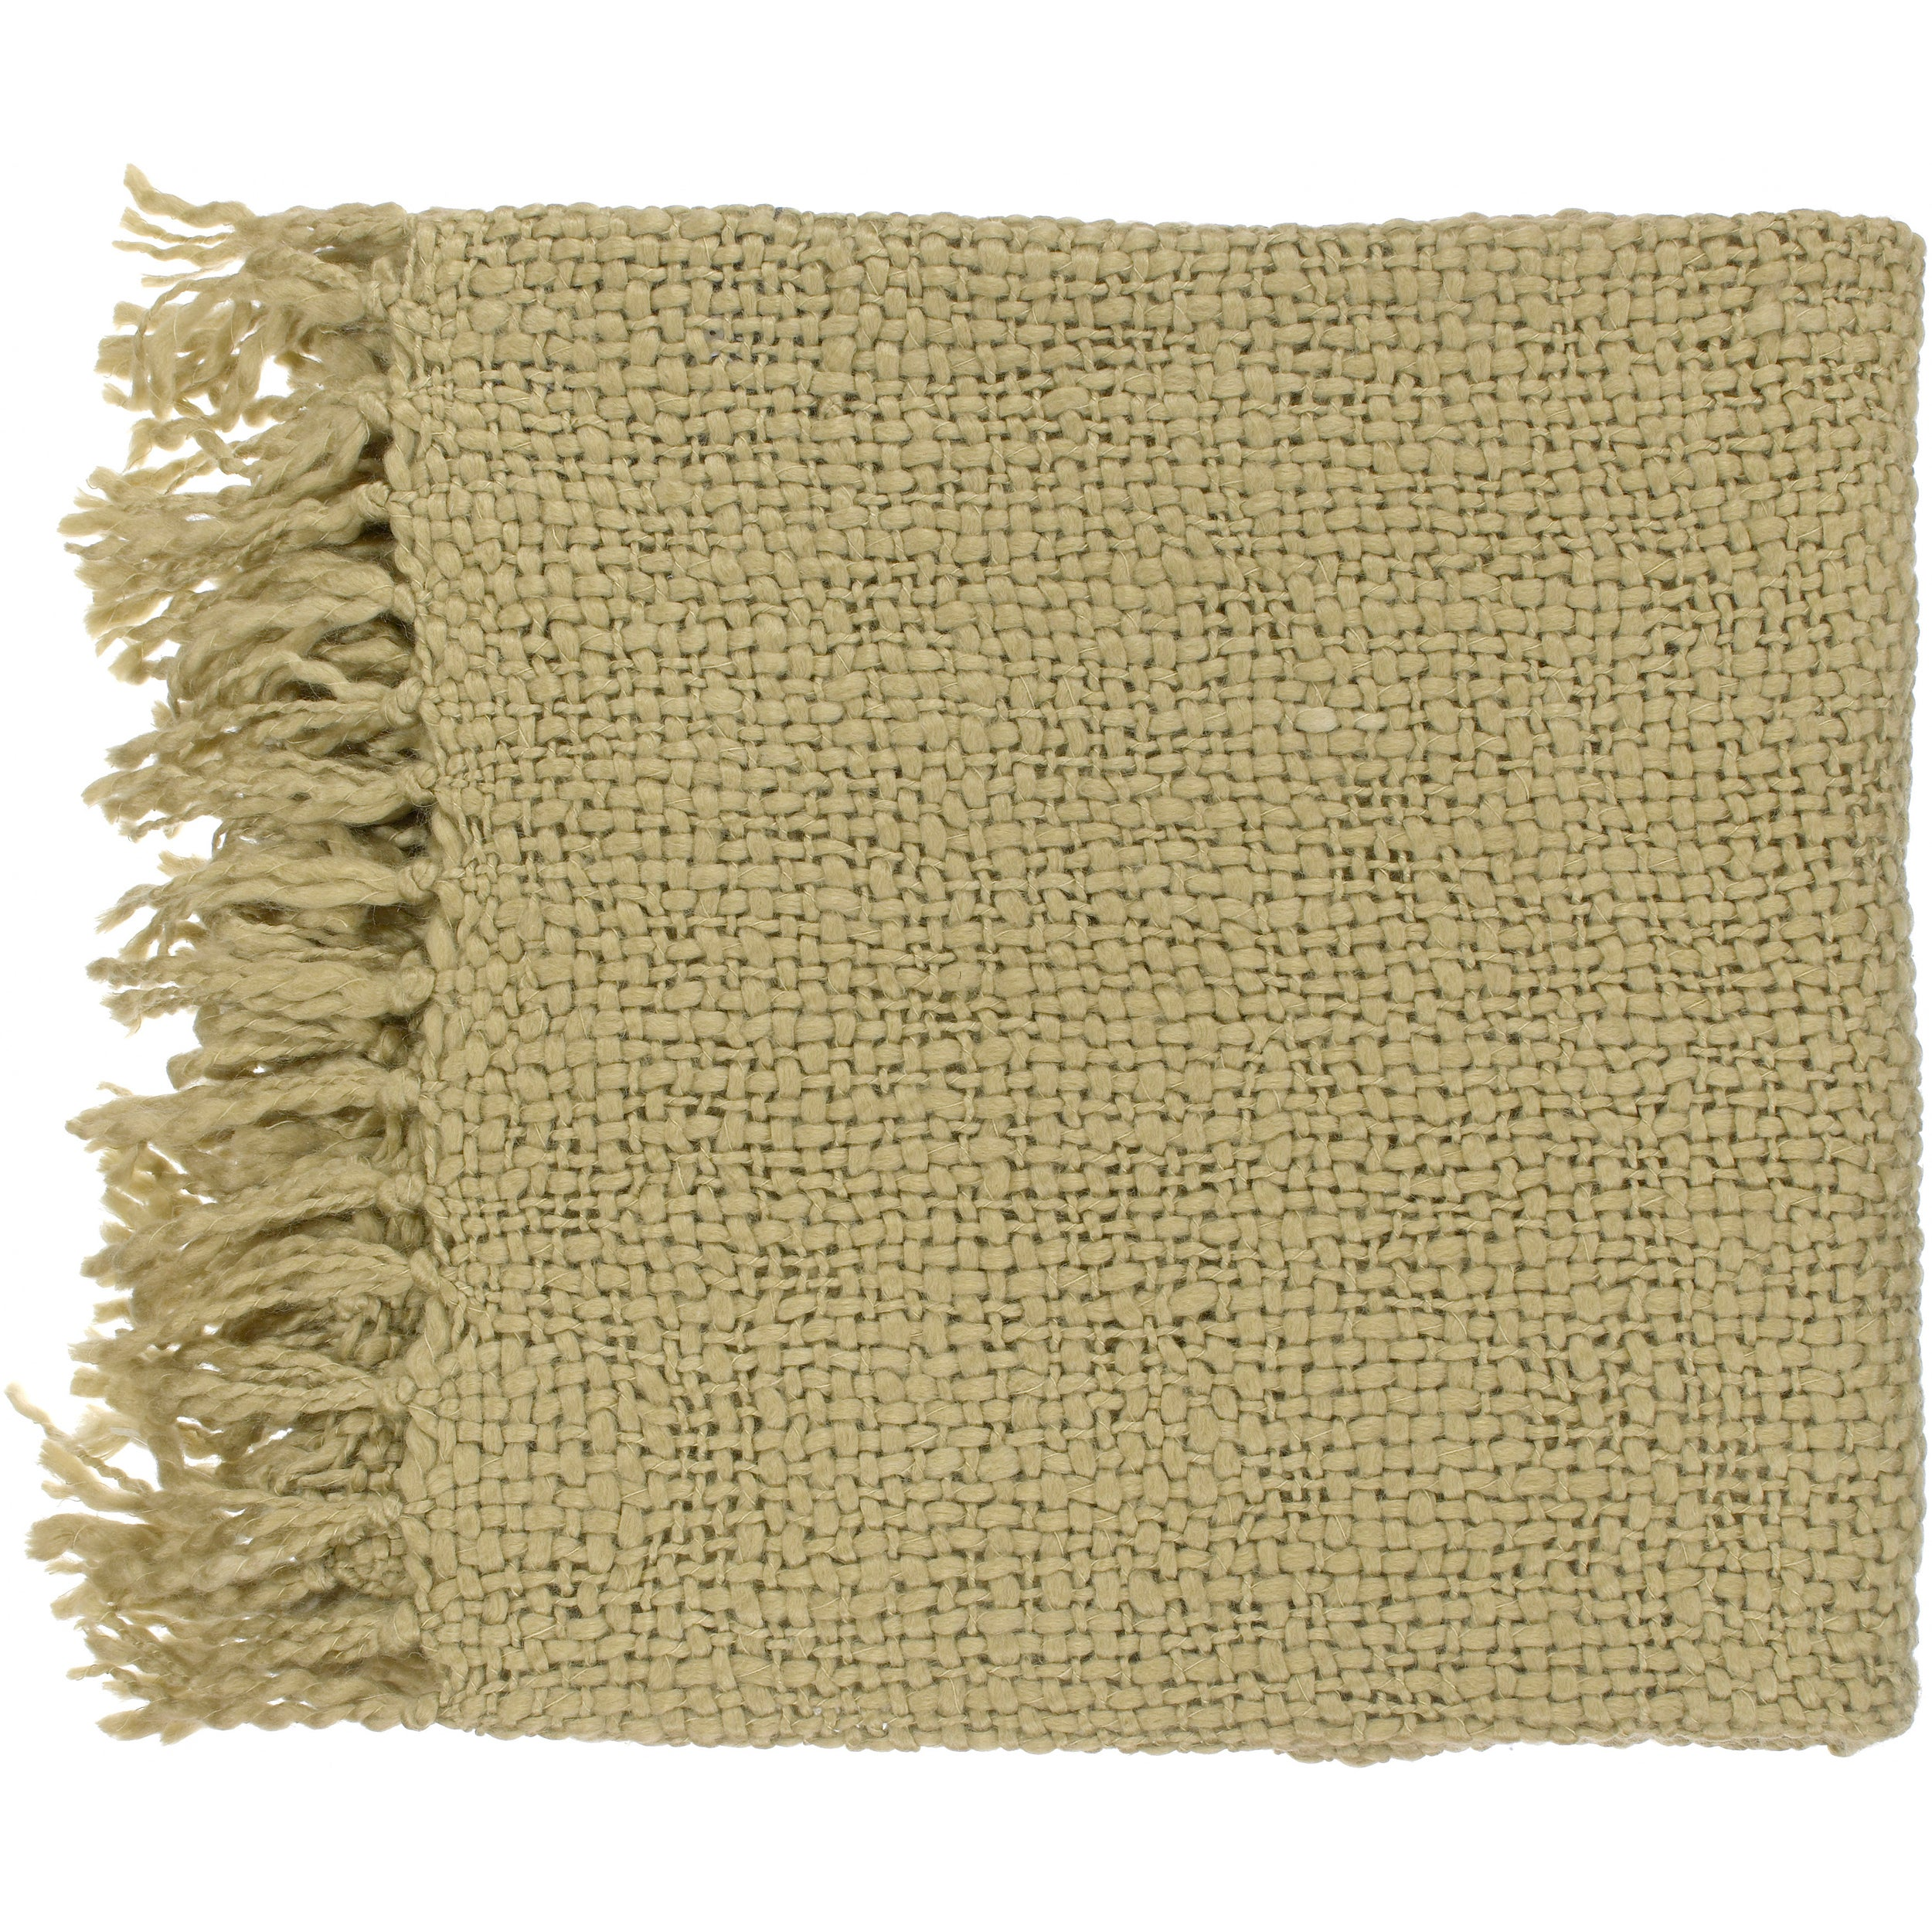 Woven Berk Acrylic and Wool Throw Blanket